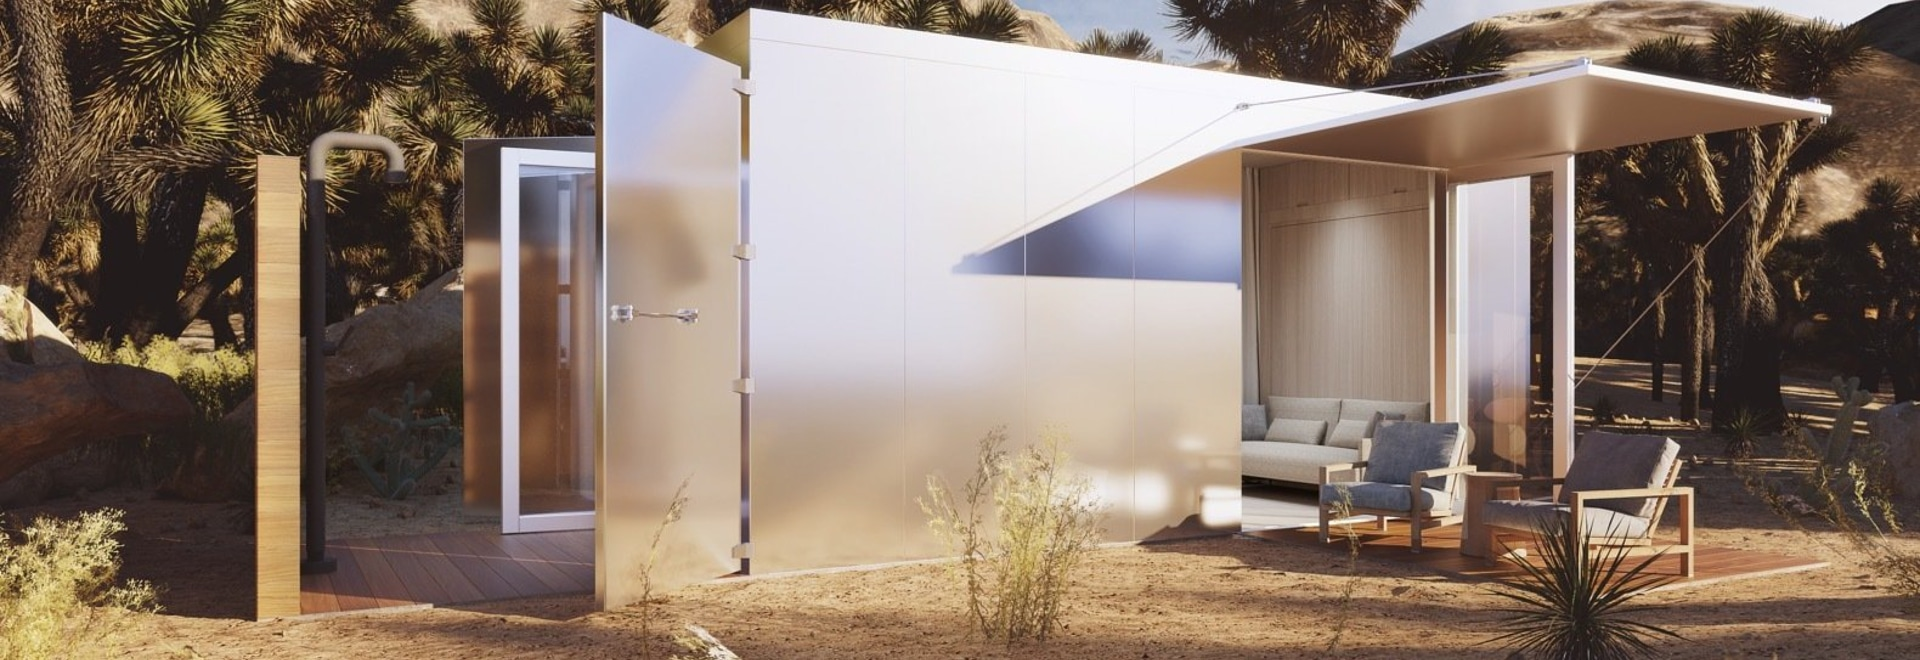 Constructed from a repurposed shipping container, the Buhaus offers 160 square feet of luxury living with off-grid capabilities.